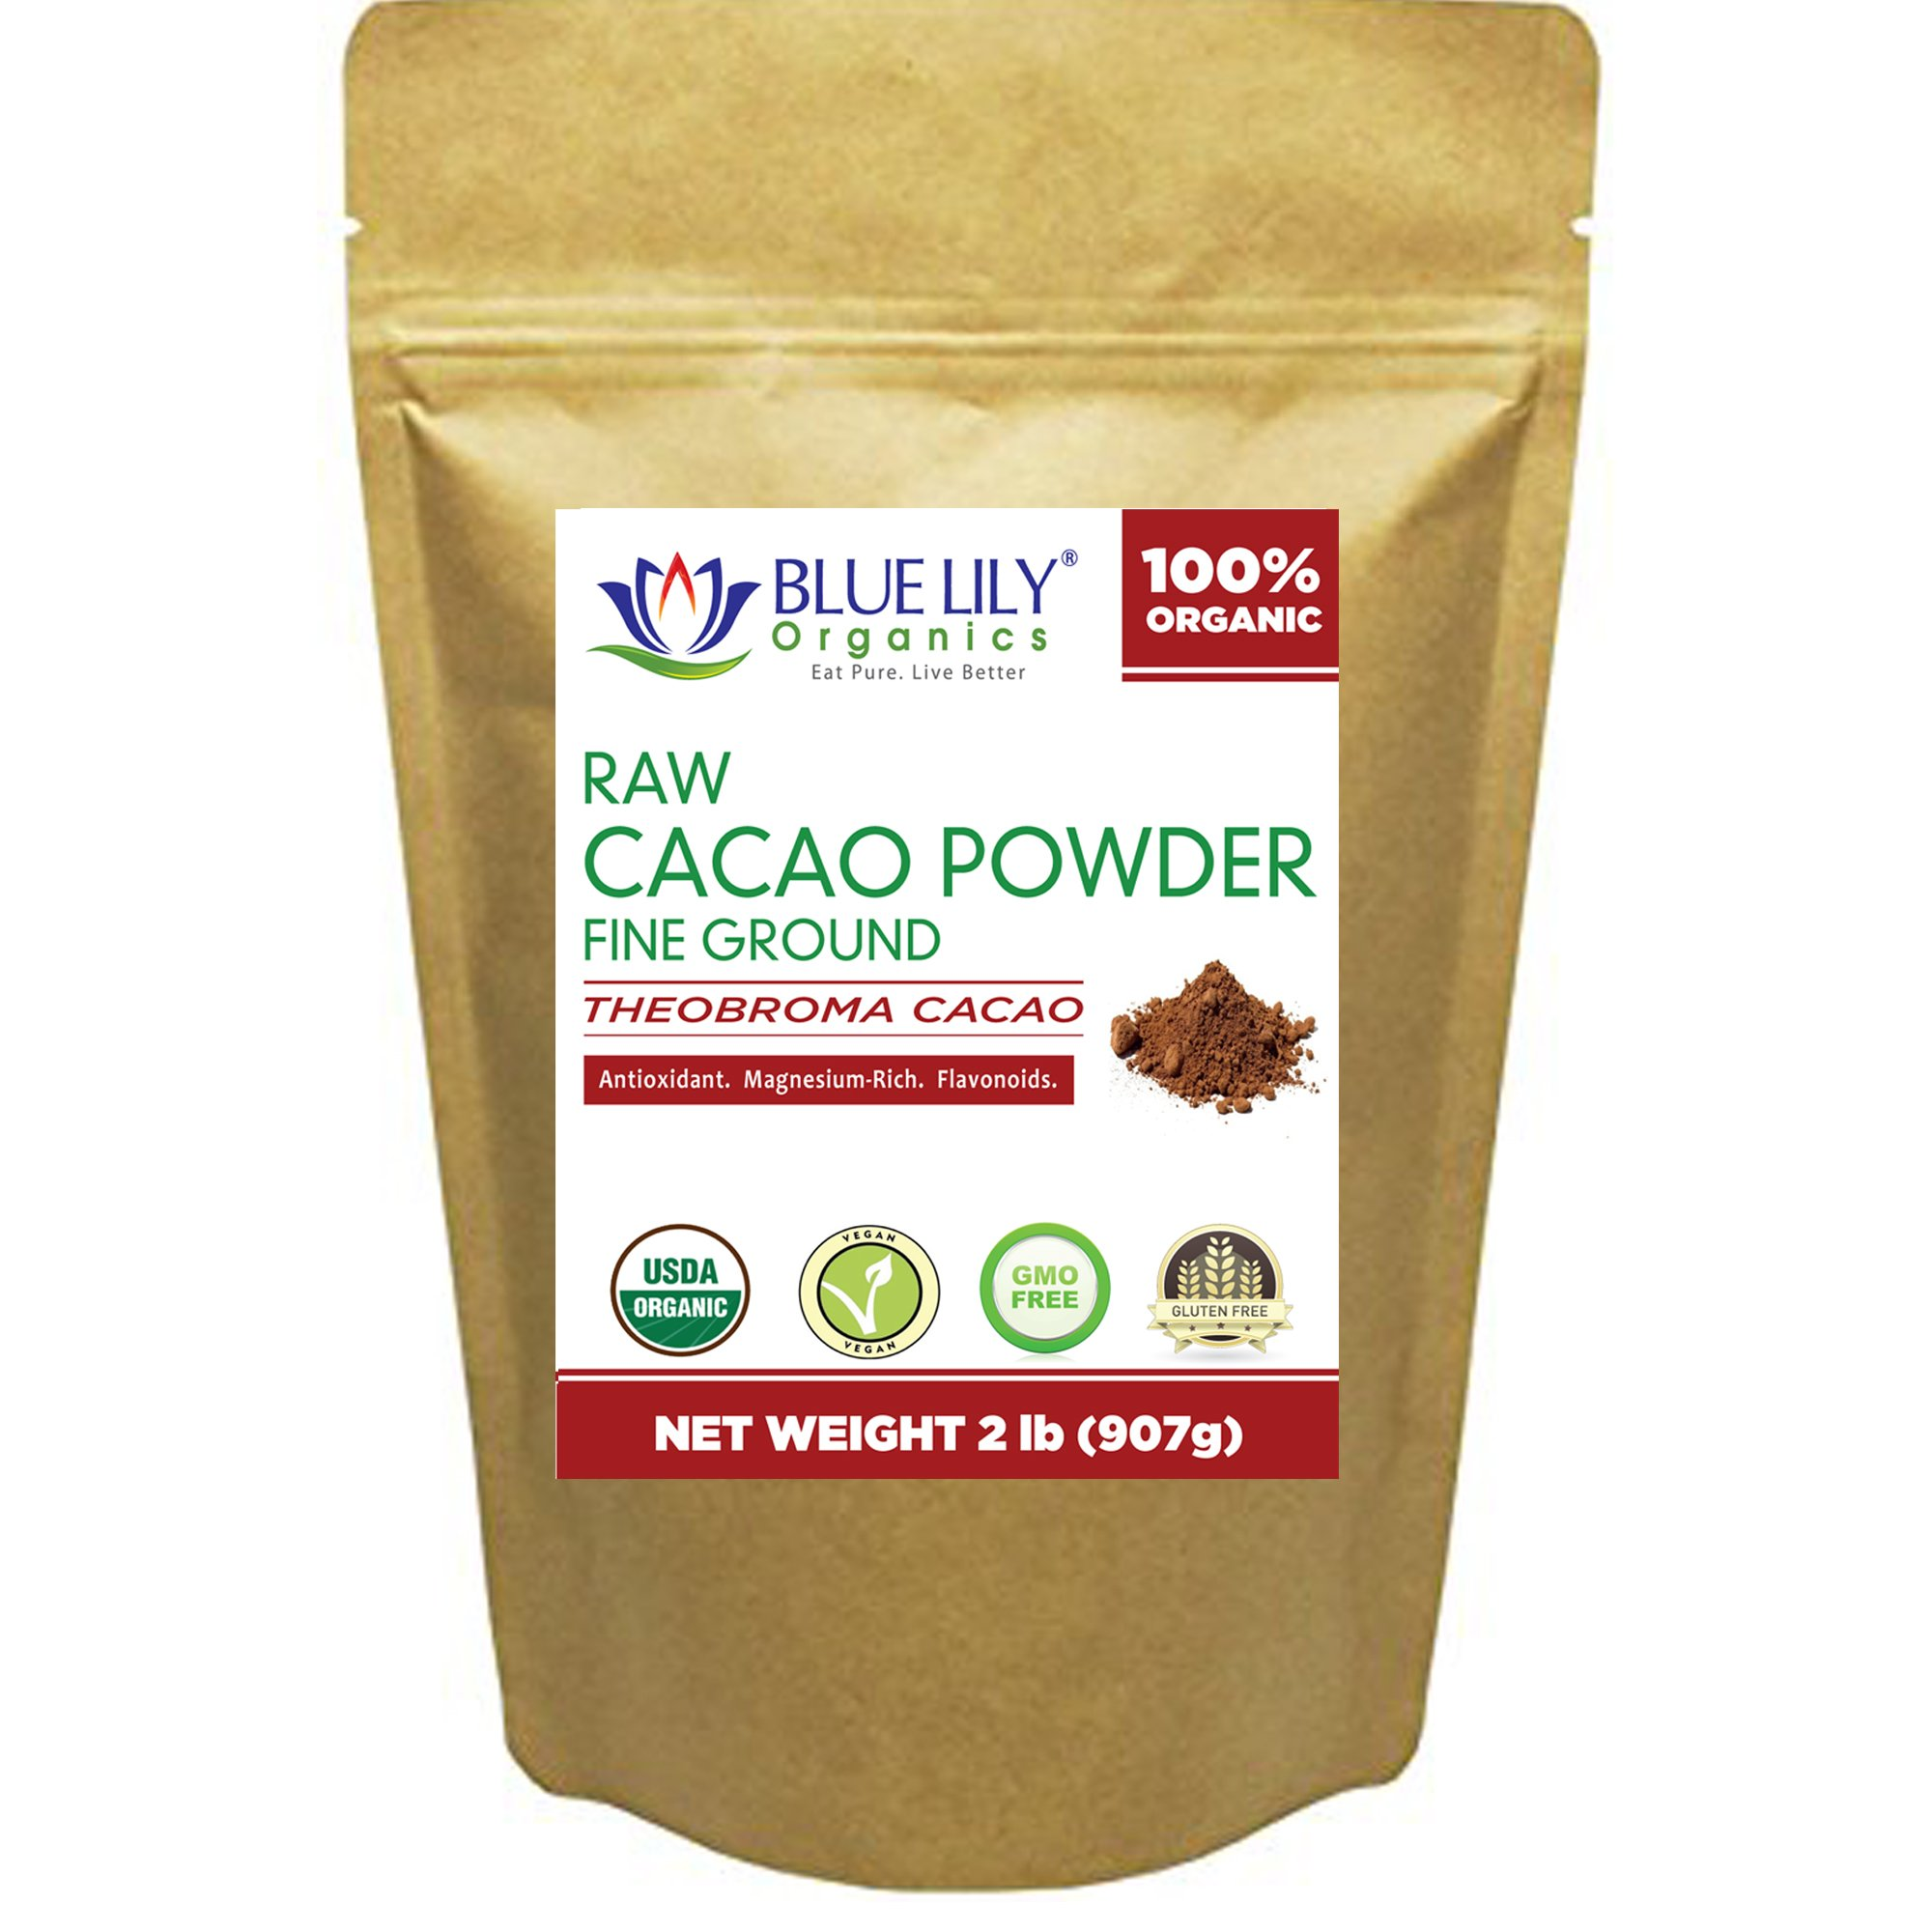 Cacao Powder - 2 lb - Certified Organic, Unsweetened (Dark Cocoa Powder), Antioxidant Superfood, Made from the BEST tasting PREMIUM Criollo Cacao Beans